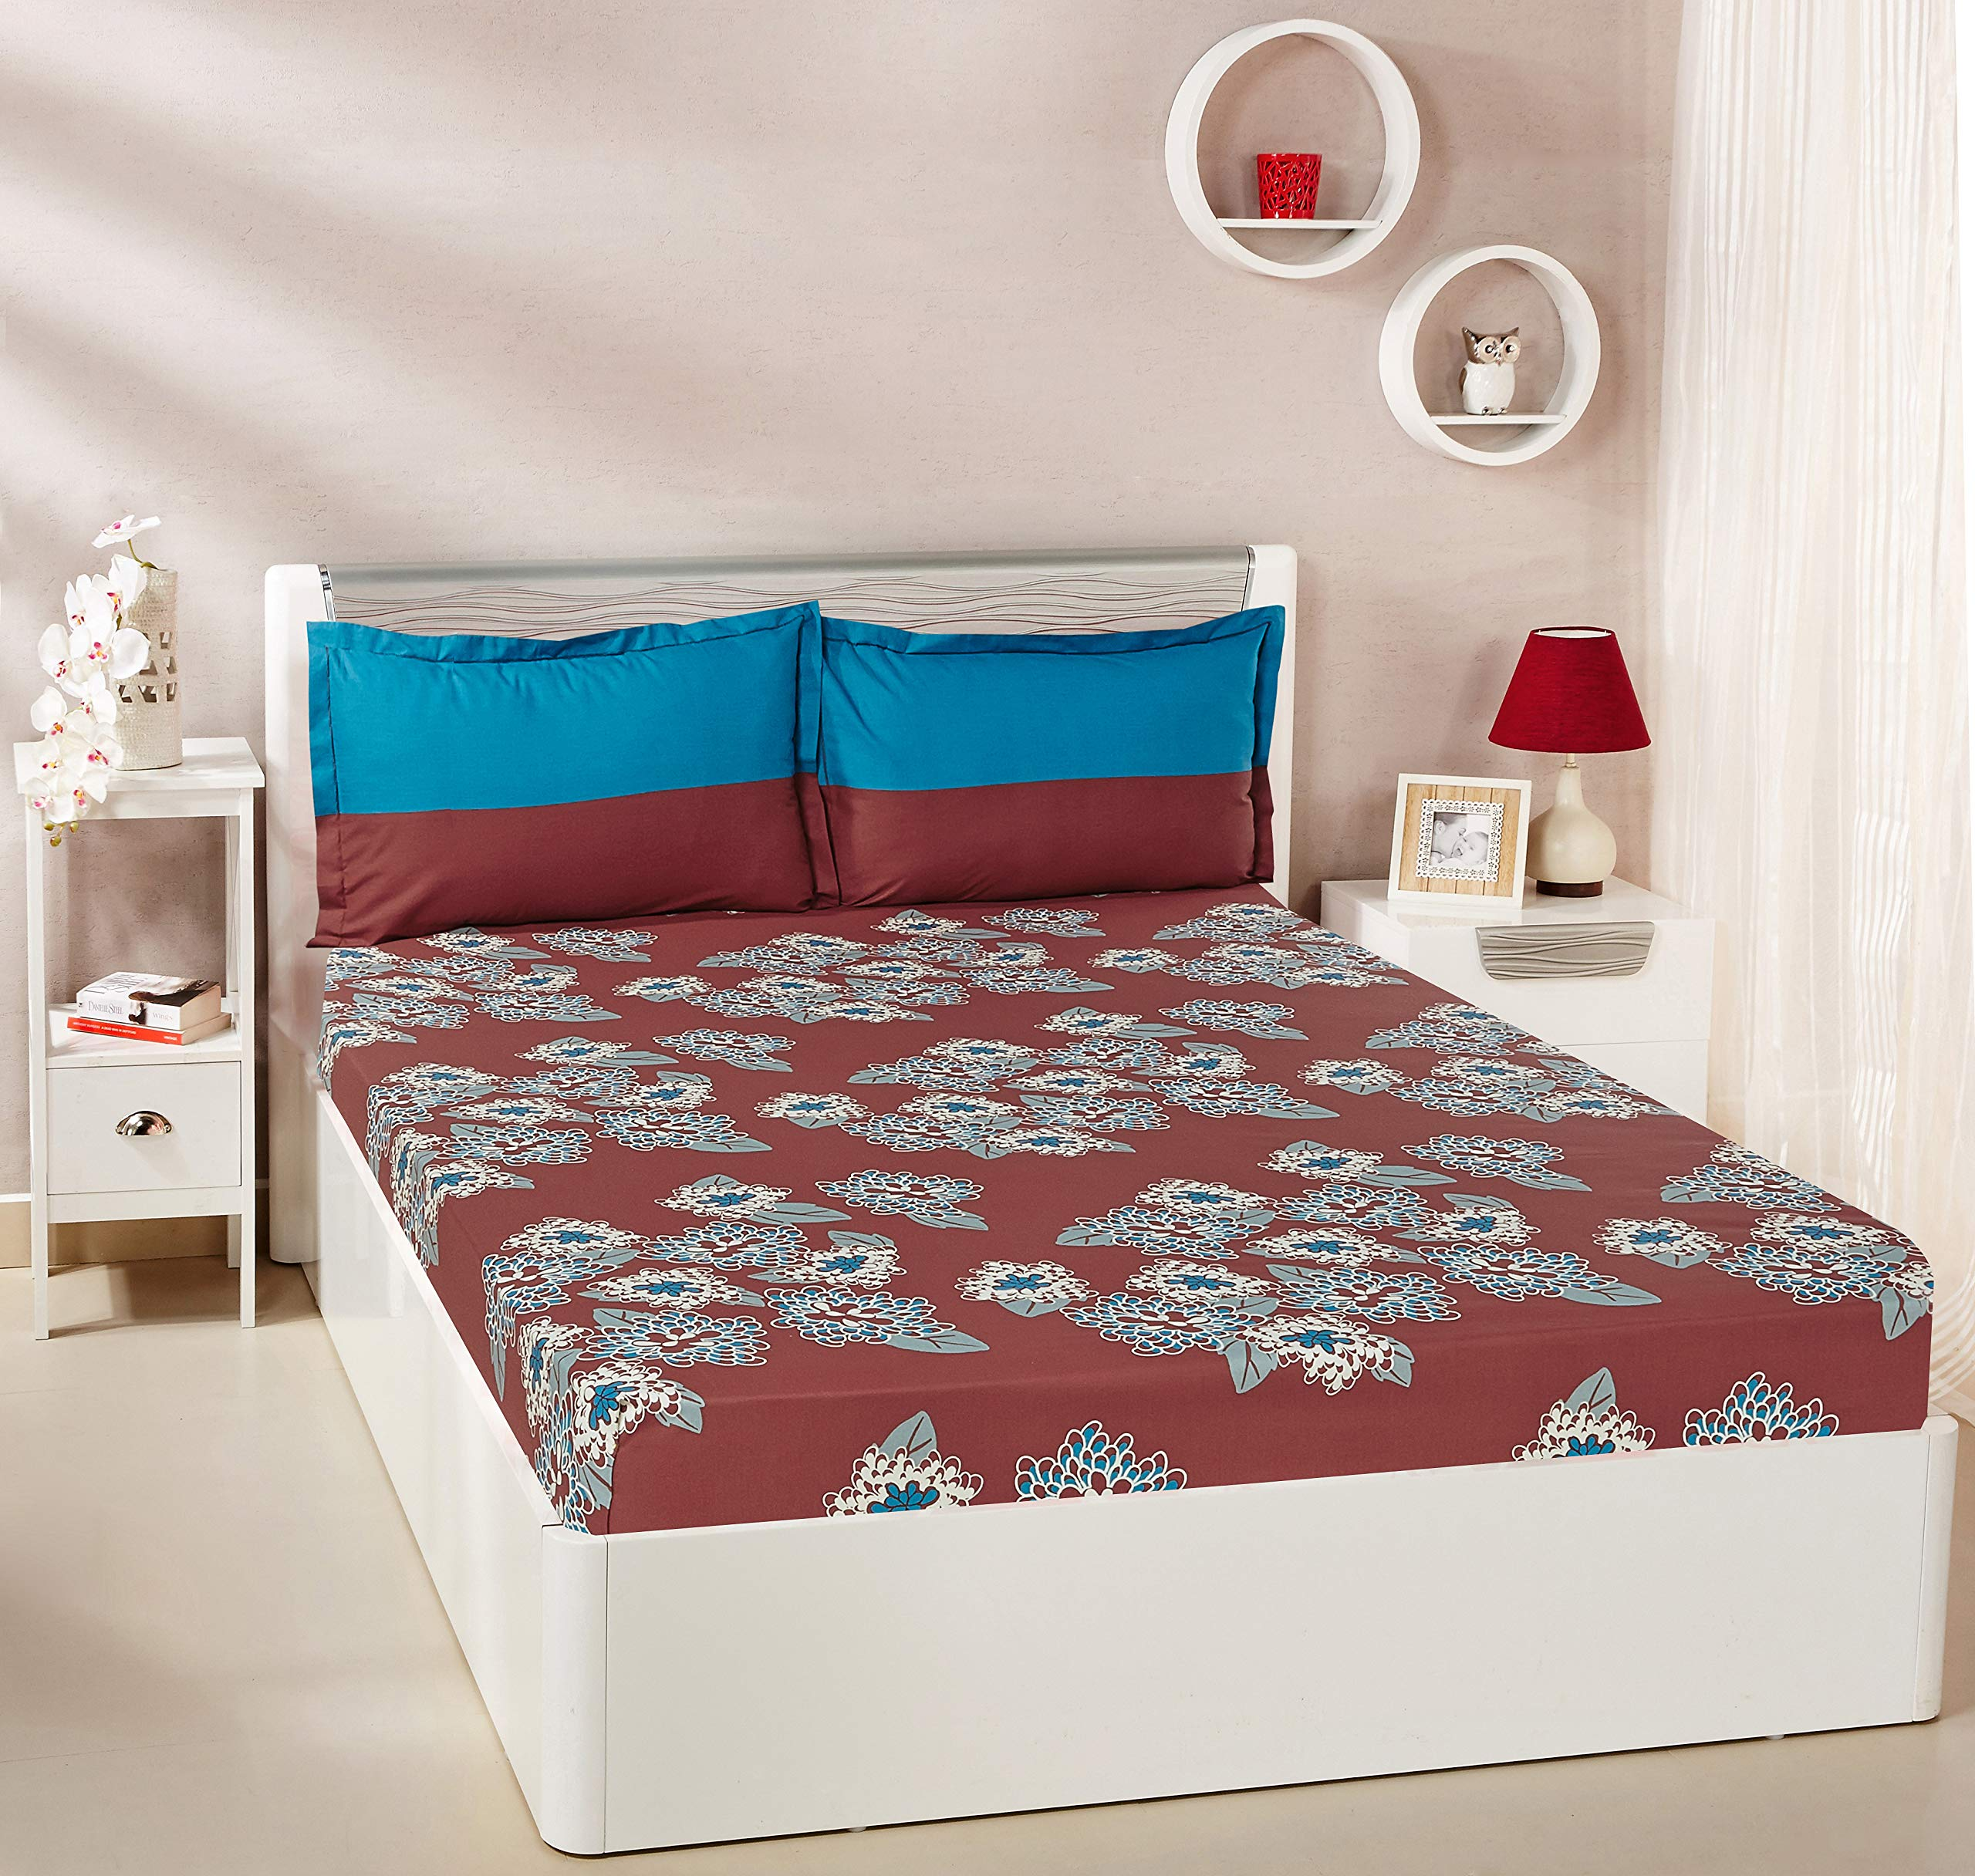 Amazon Brand - Solimo Floral Flakes 144 TC 100% Cotton Double Bedsheet with 2 Pillow Covers, Maroon product image